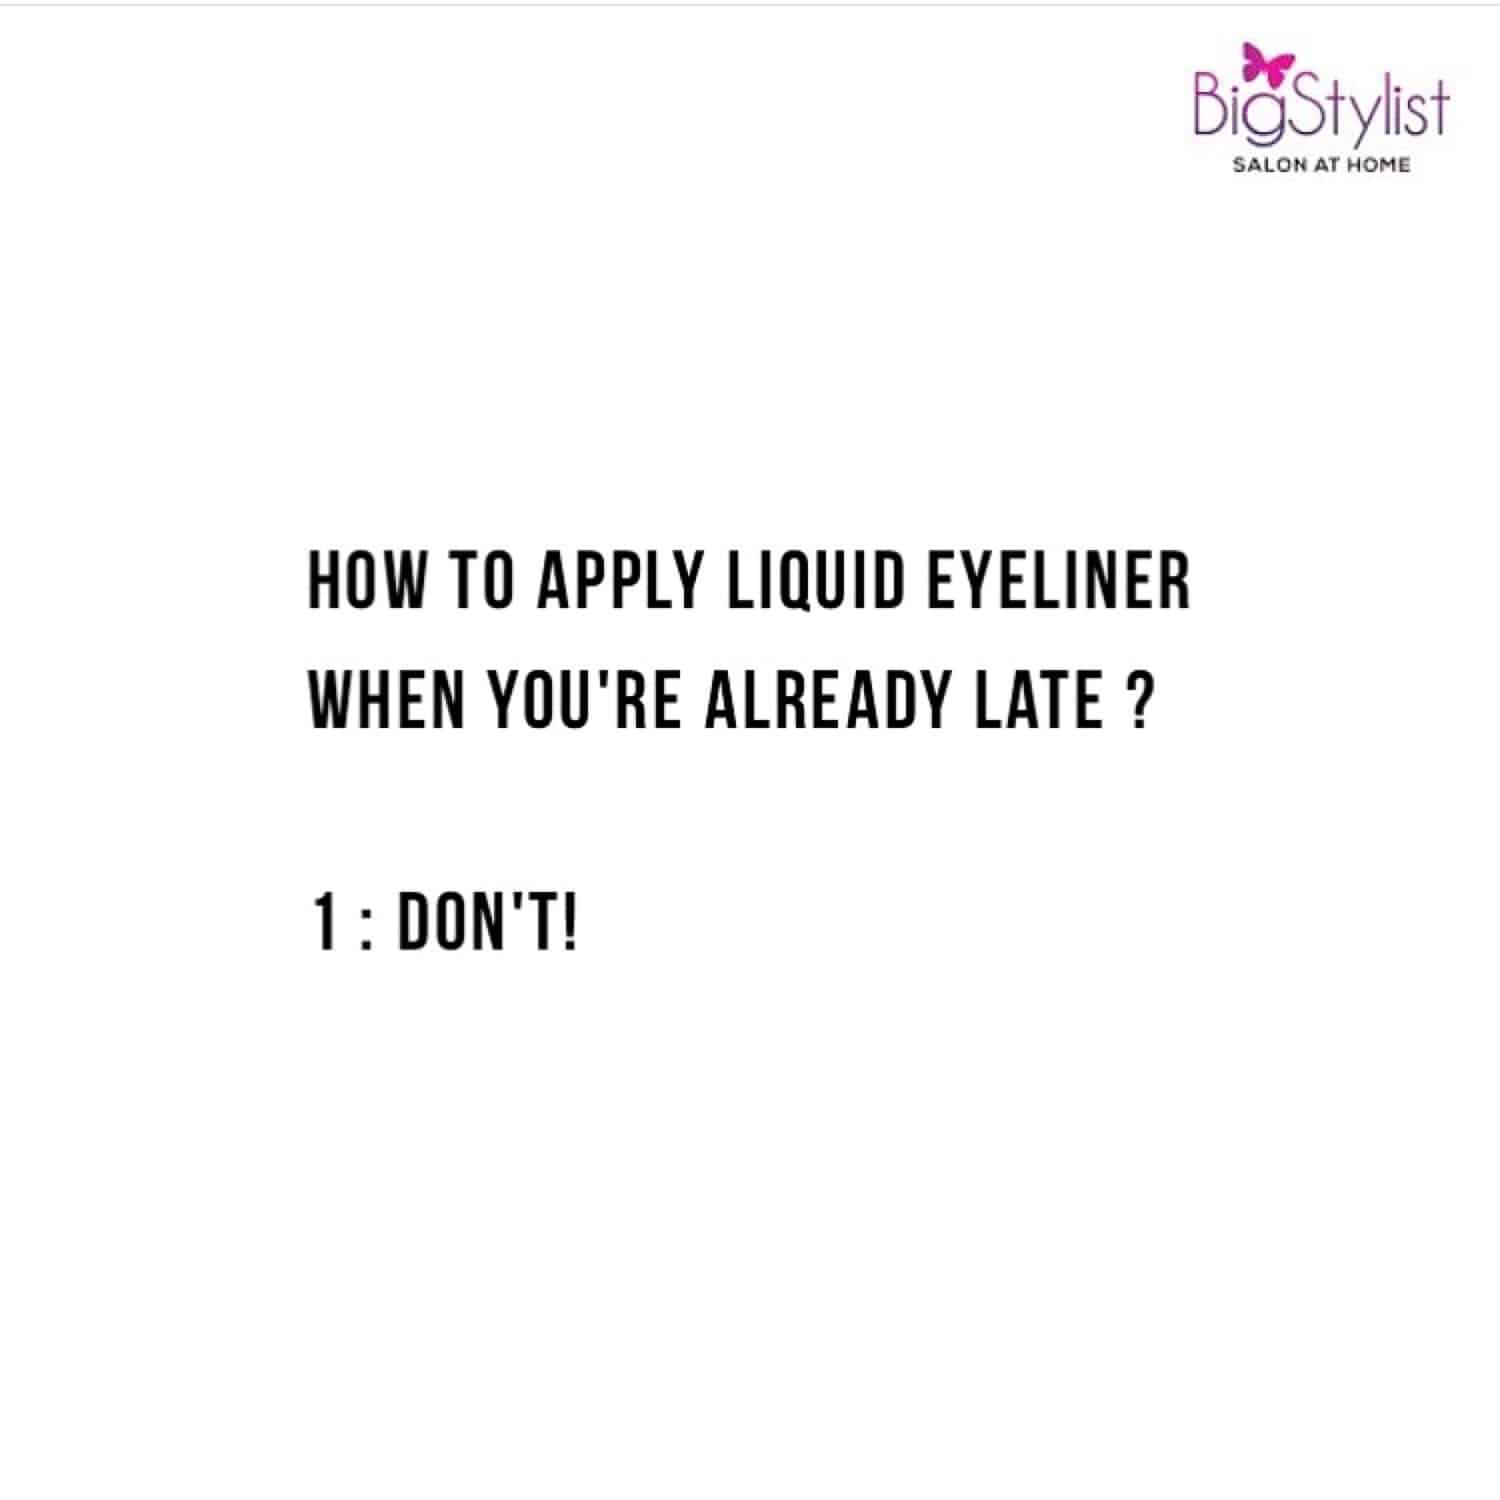 Monday morning tip!  #eyeliner #late #monday #morning #beauty #beautymemes #memes #beautyquotes #beautytip #beautyhumor #humor #women #stayhomebeautiful #BigStylist